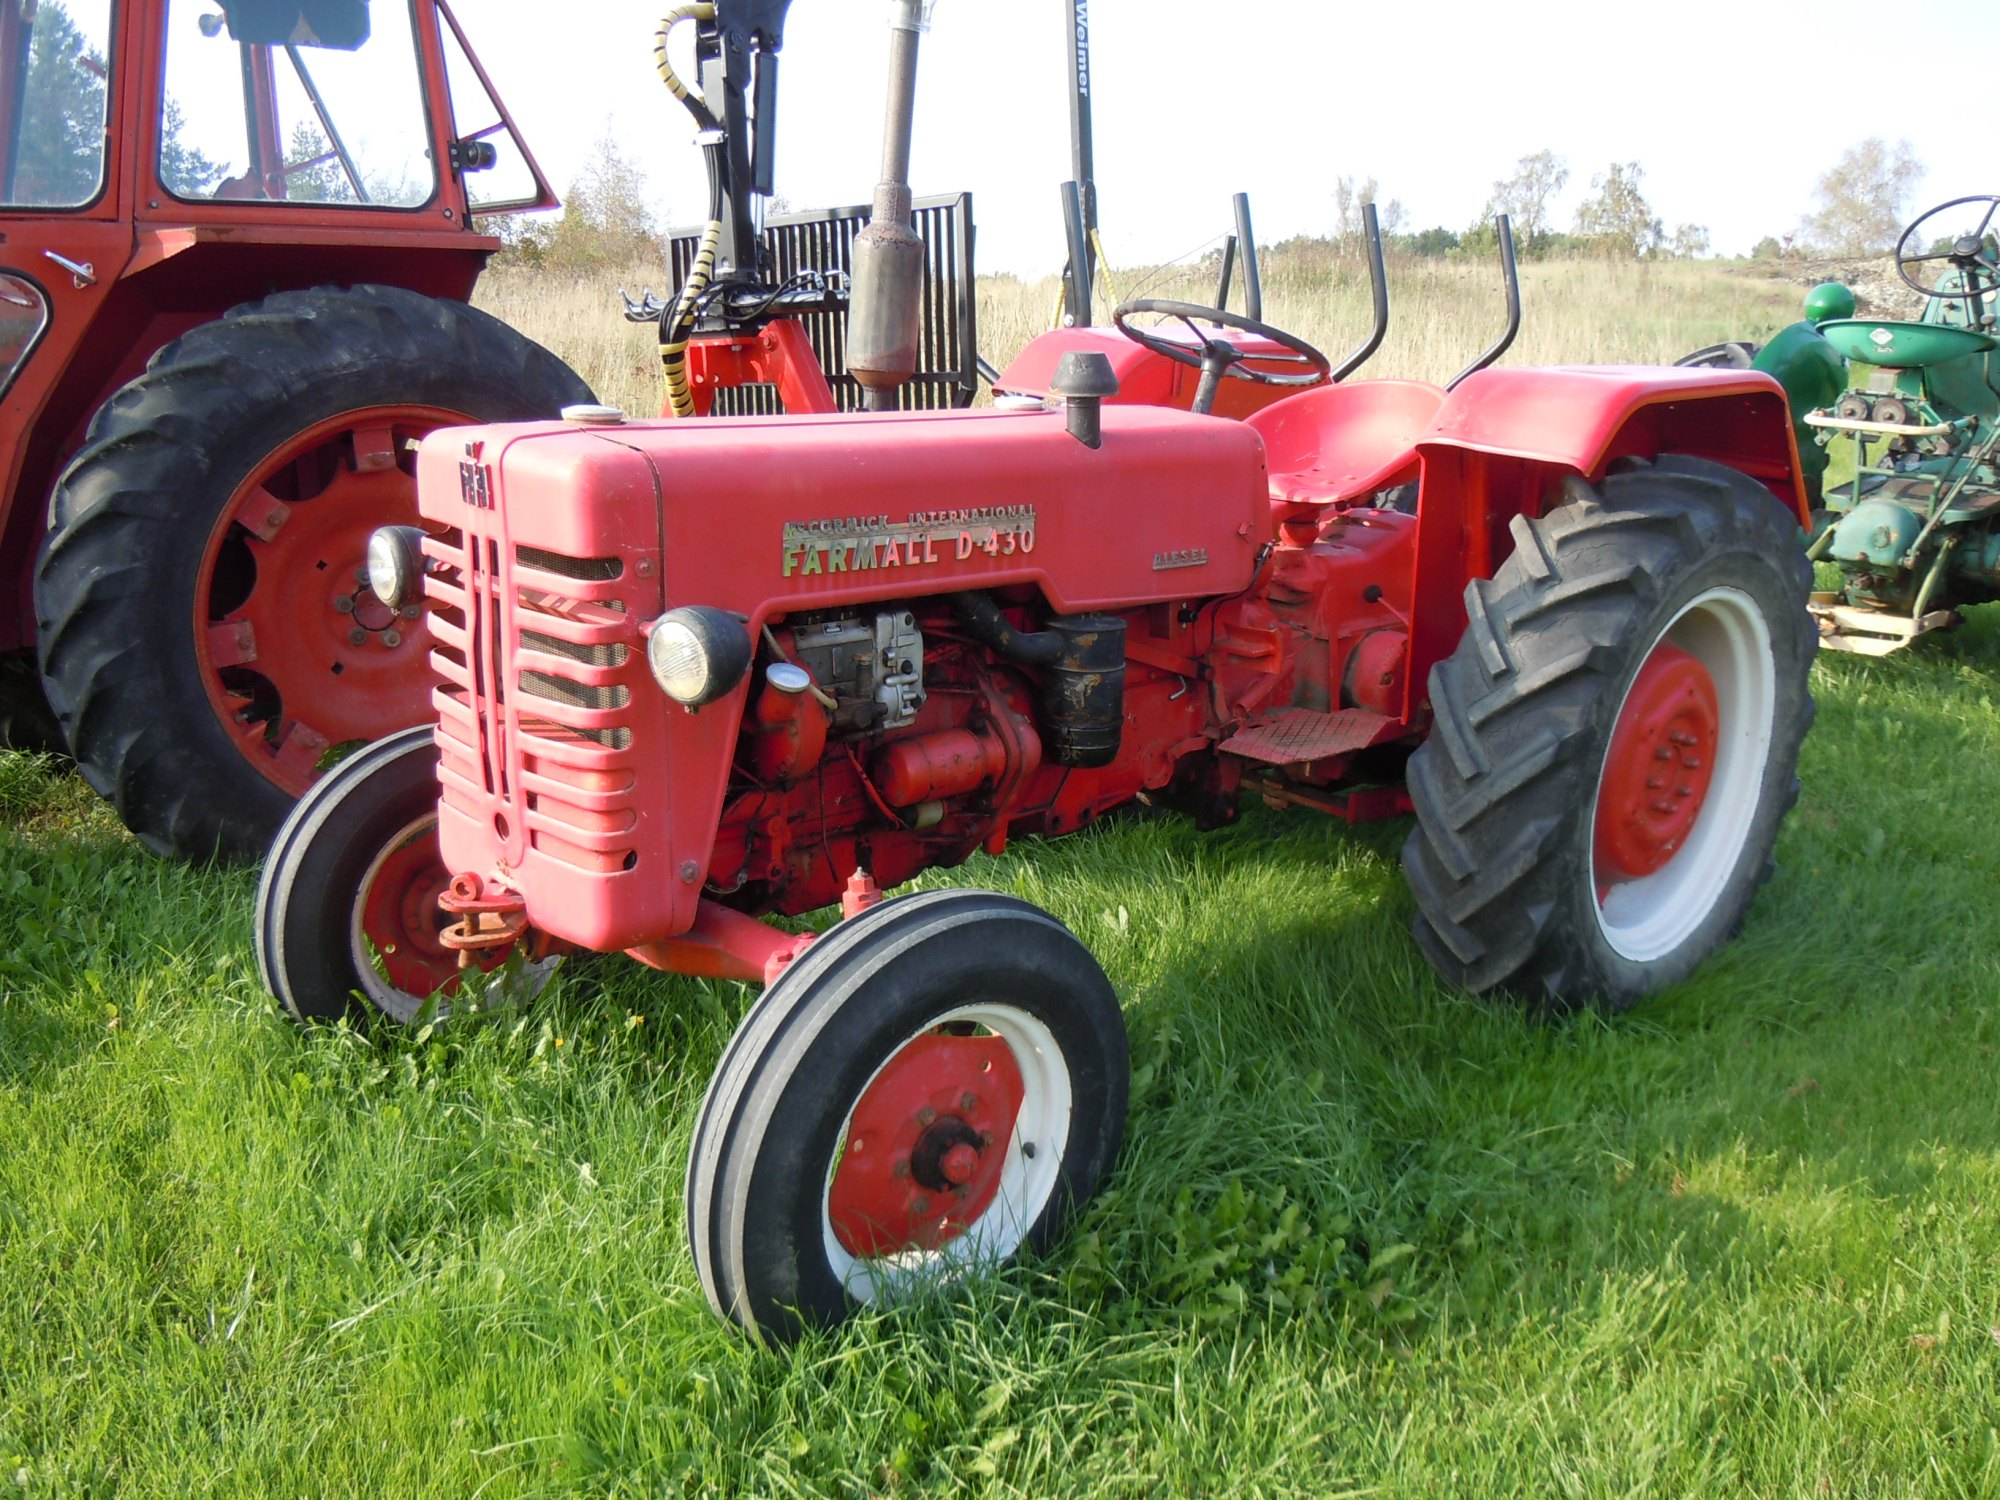 hight resolution of file farmall d 430 tractor jpg